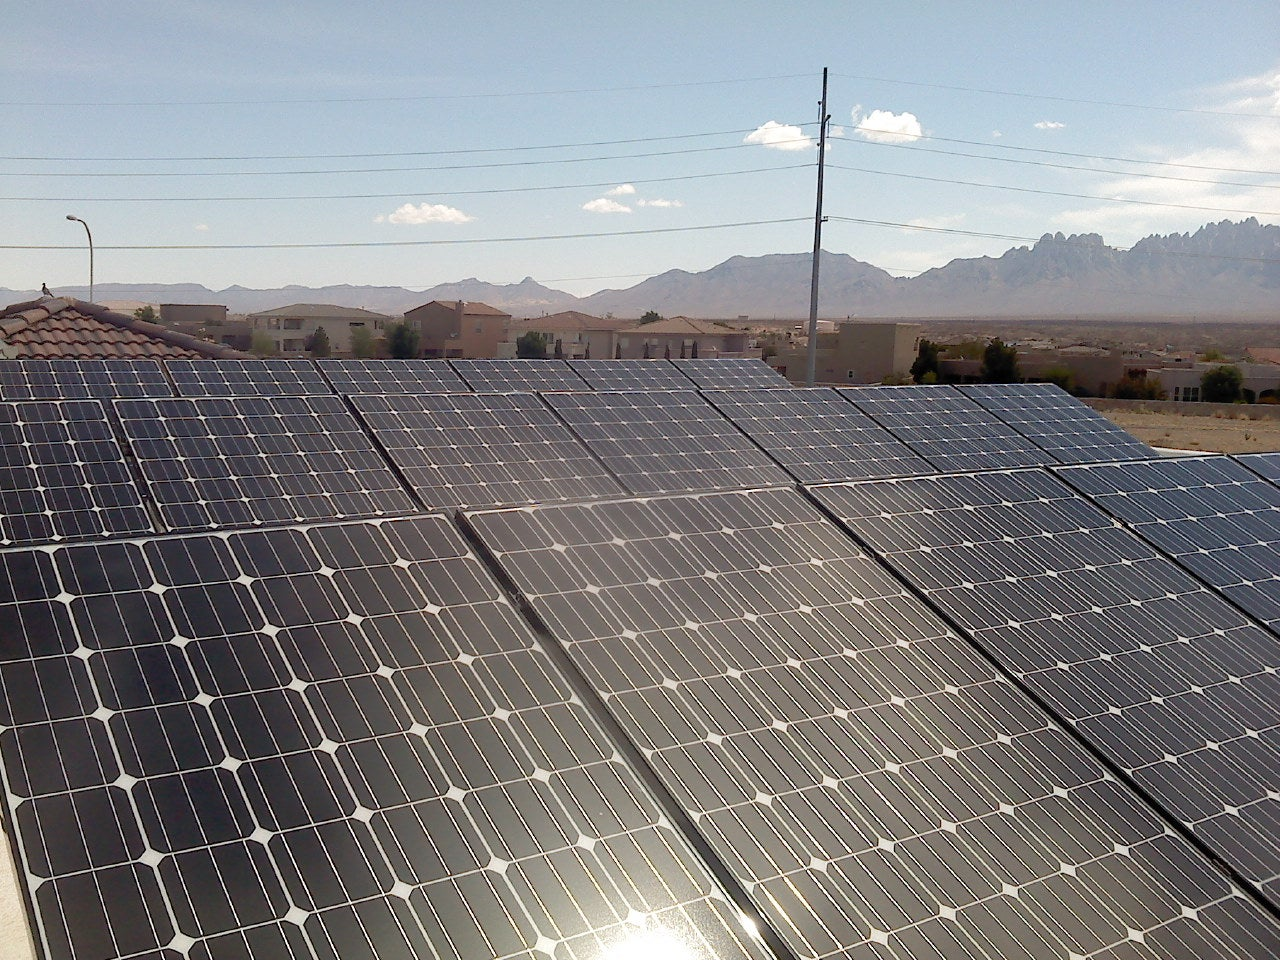 A Sunspot Solar PV system in front of the Organ Mountains.